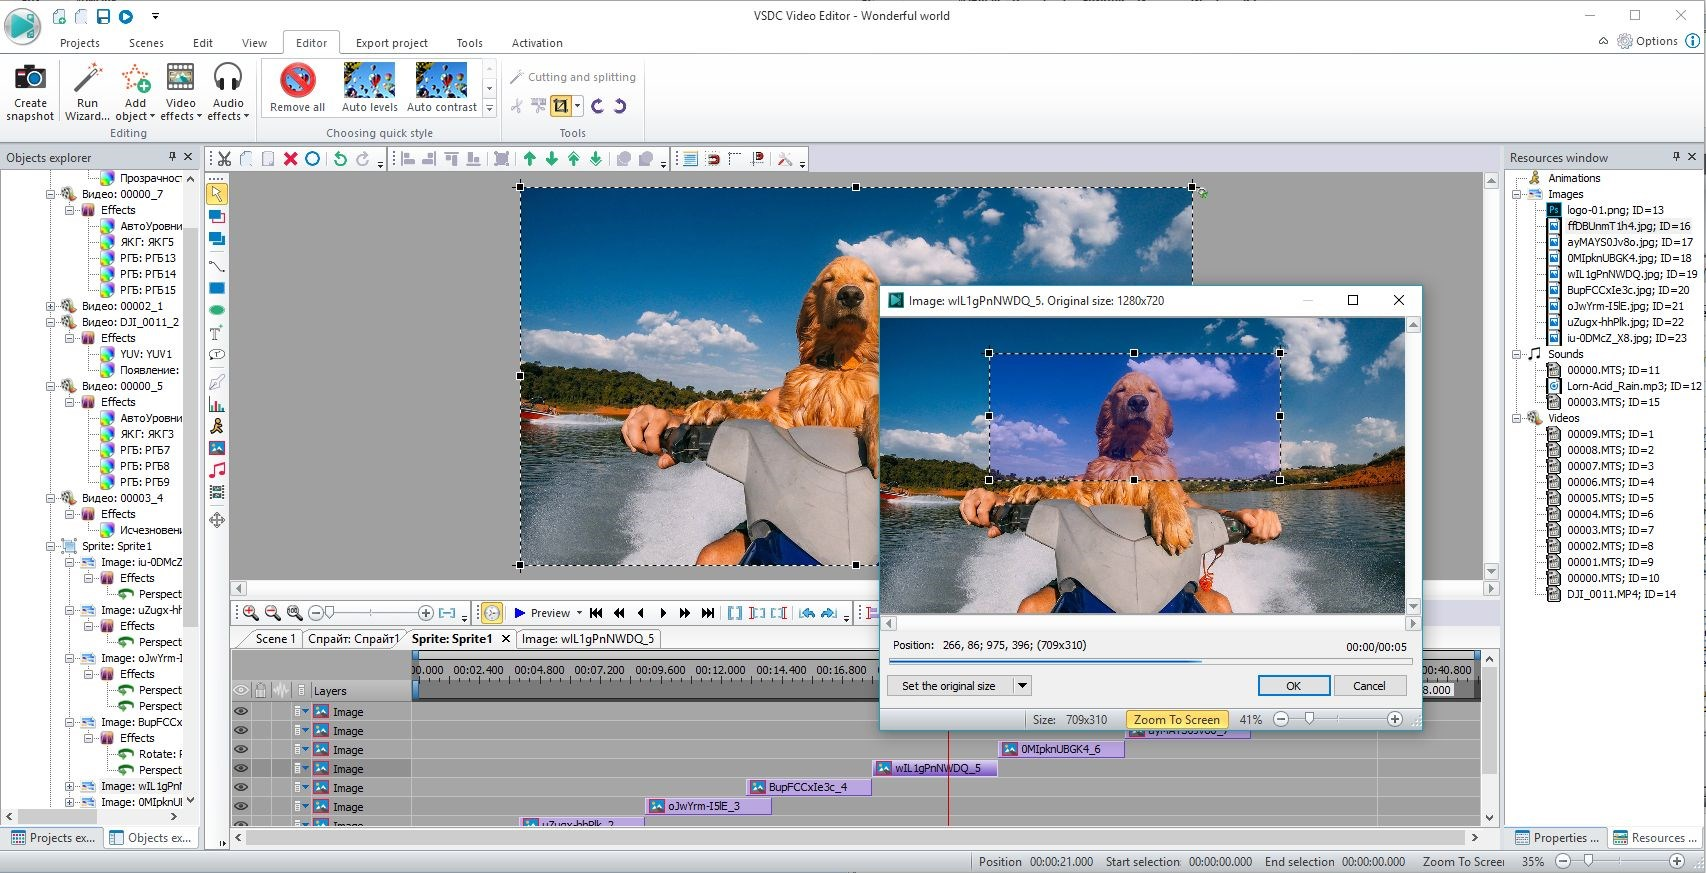 VSDC Video Editor screenshot 2